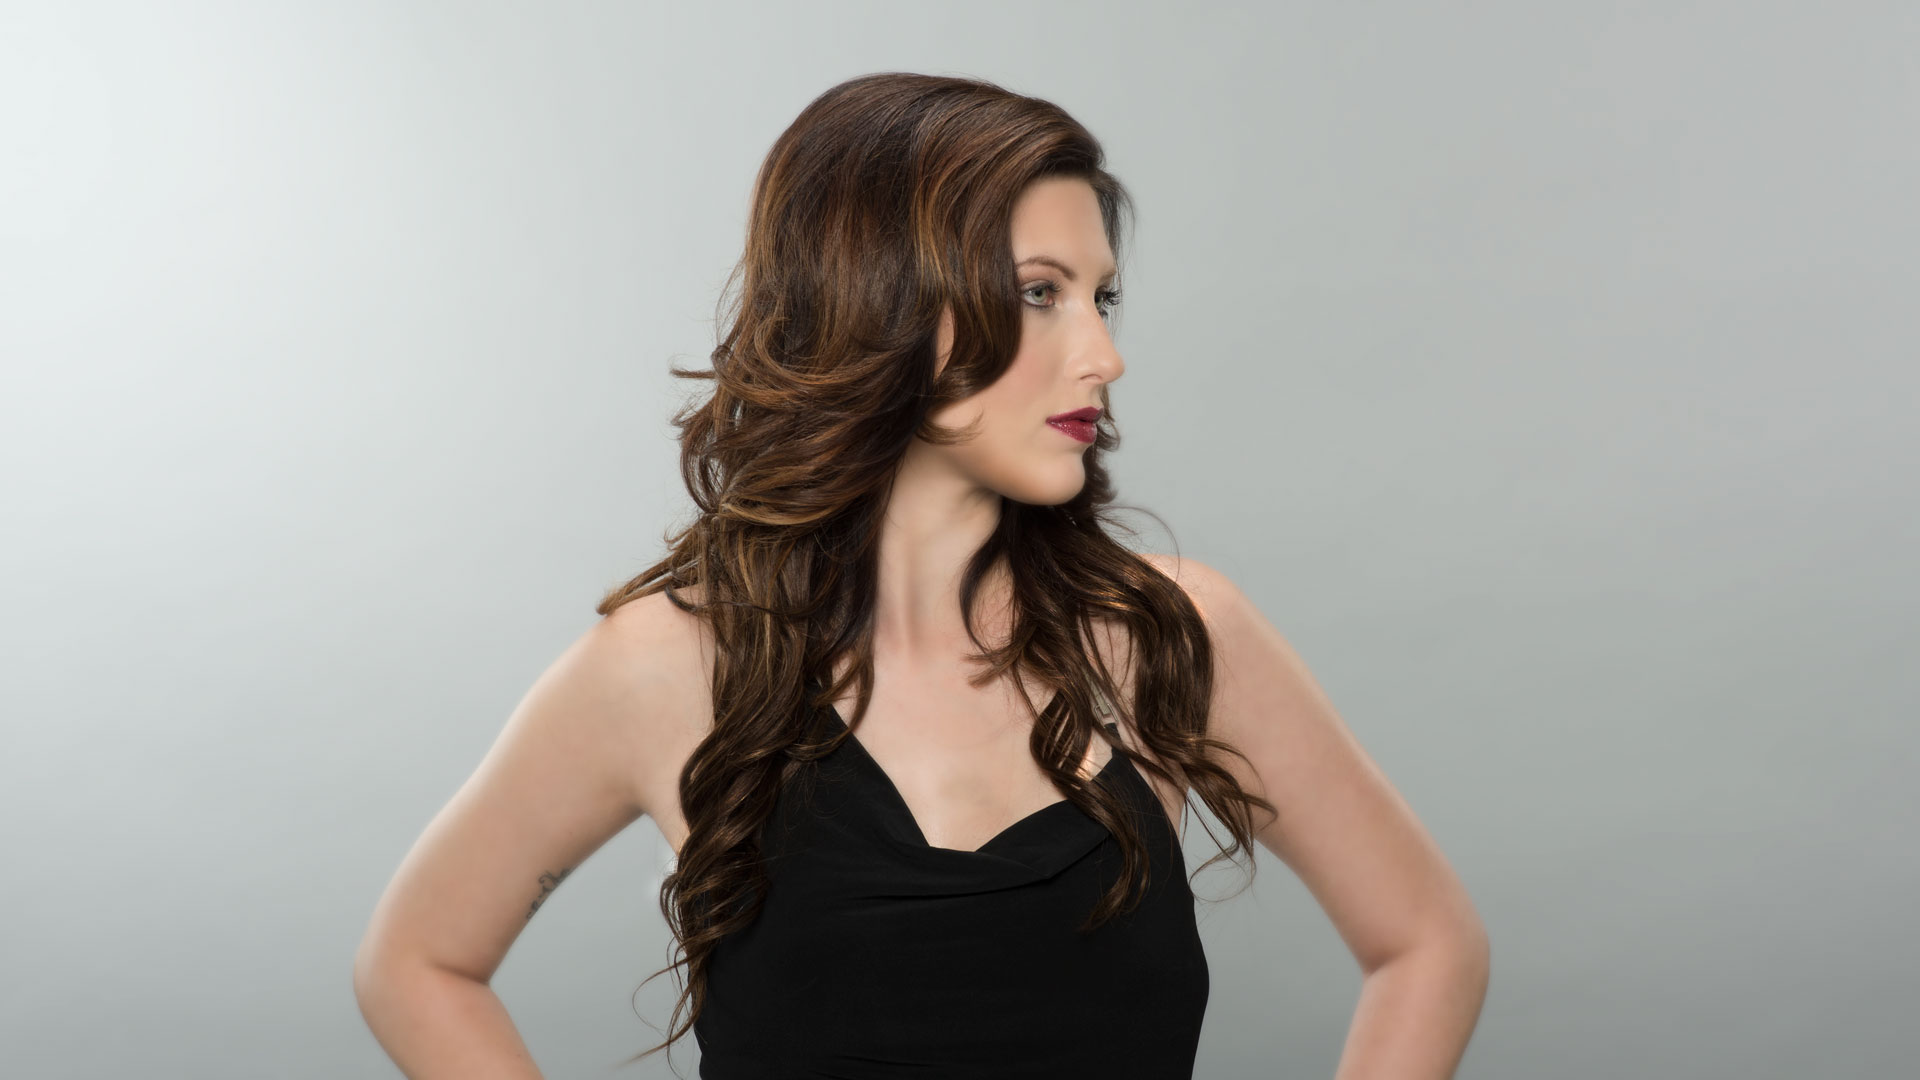 Balayage Dallas Best Hair salon for Balayage highlights Plano Top Hair Colorist Balayage Color Frisco Balayage Ombre Ombreage blonde Sombre Dallas Plano Frisco Allen Mckinney Addison AALAM 3